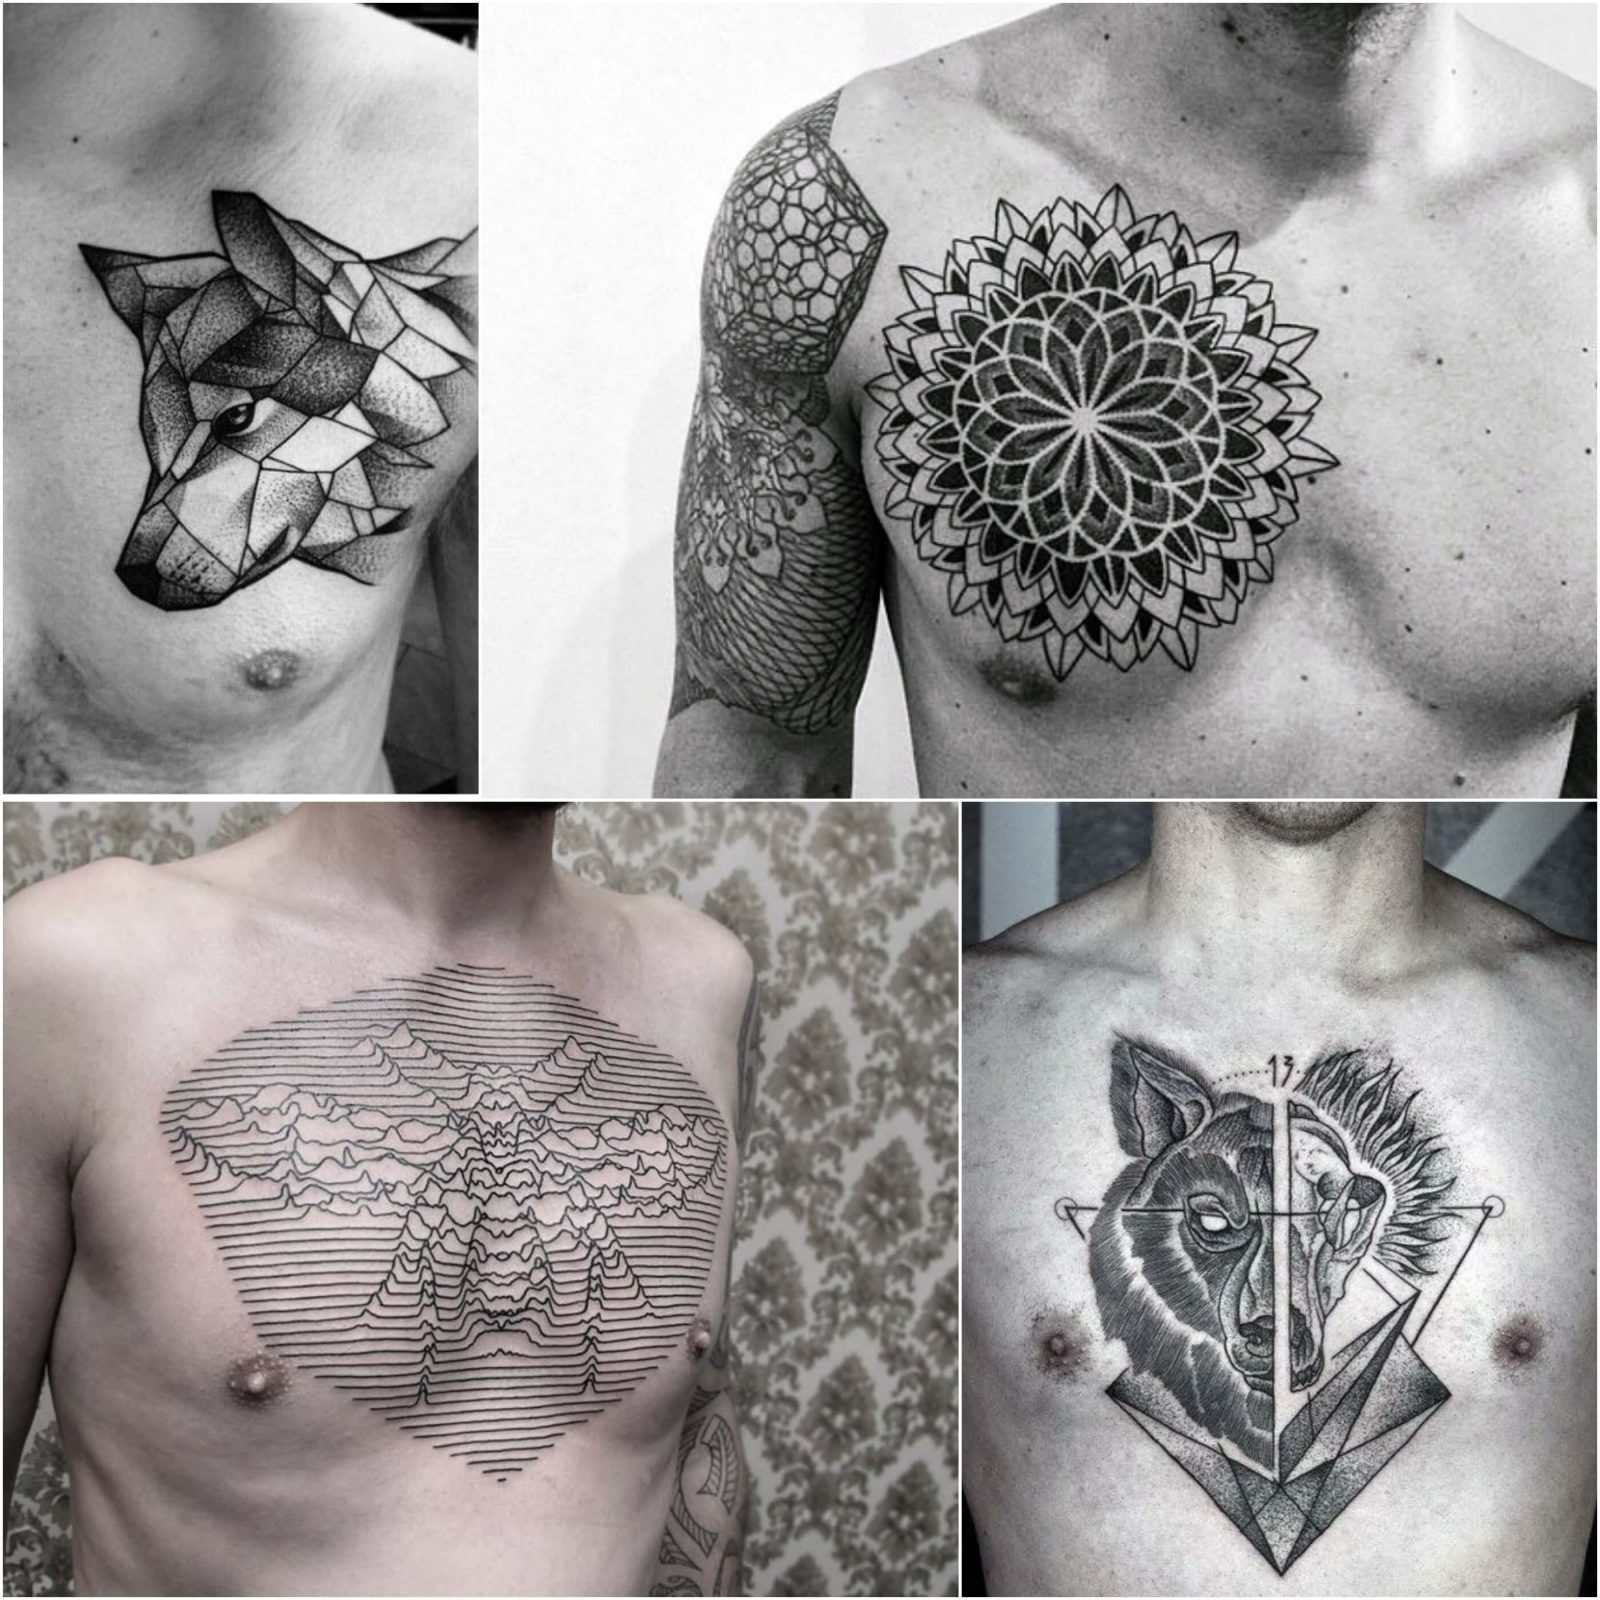 100+ Best Chest Tattoos For Men